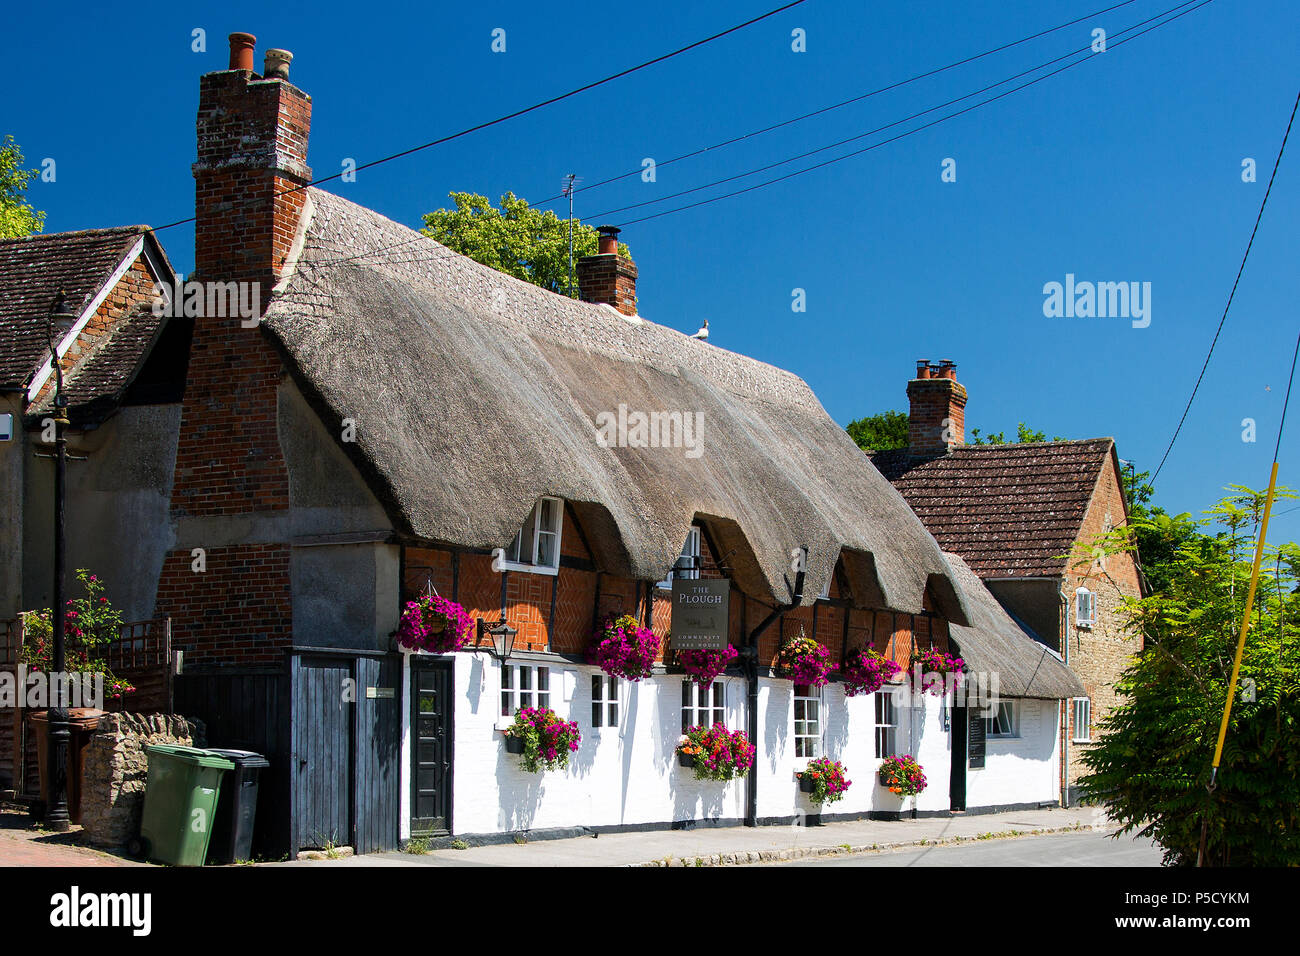 The Plough Inn on Church Street, West Hanney, Wantage, Oxfordshire, UK with a stunning display of flowers in hanging baskets on a bright summers day, - Stock Image